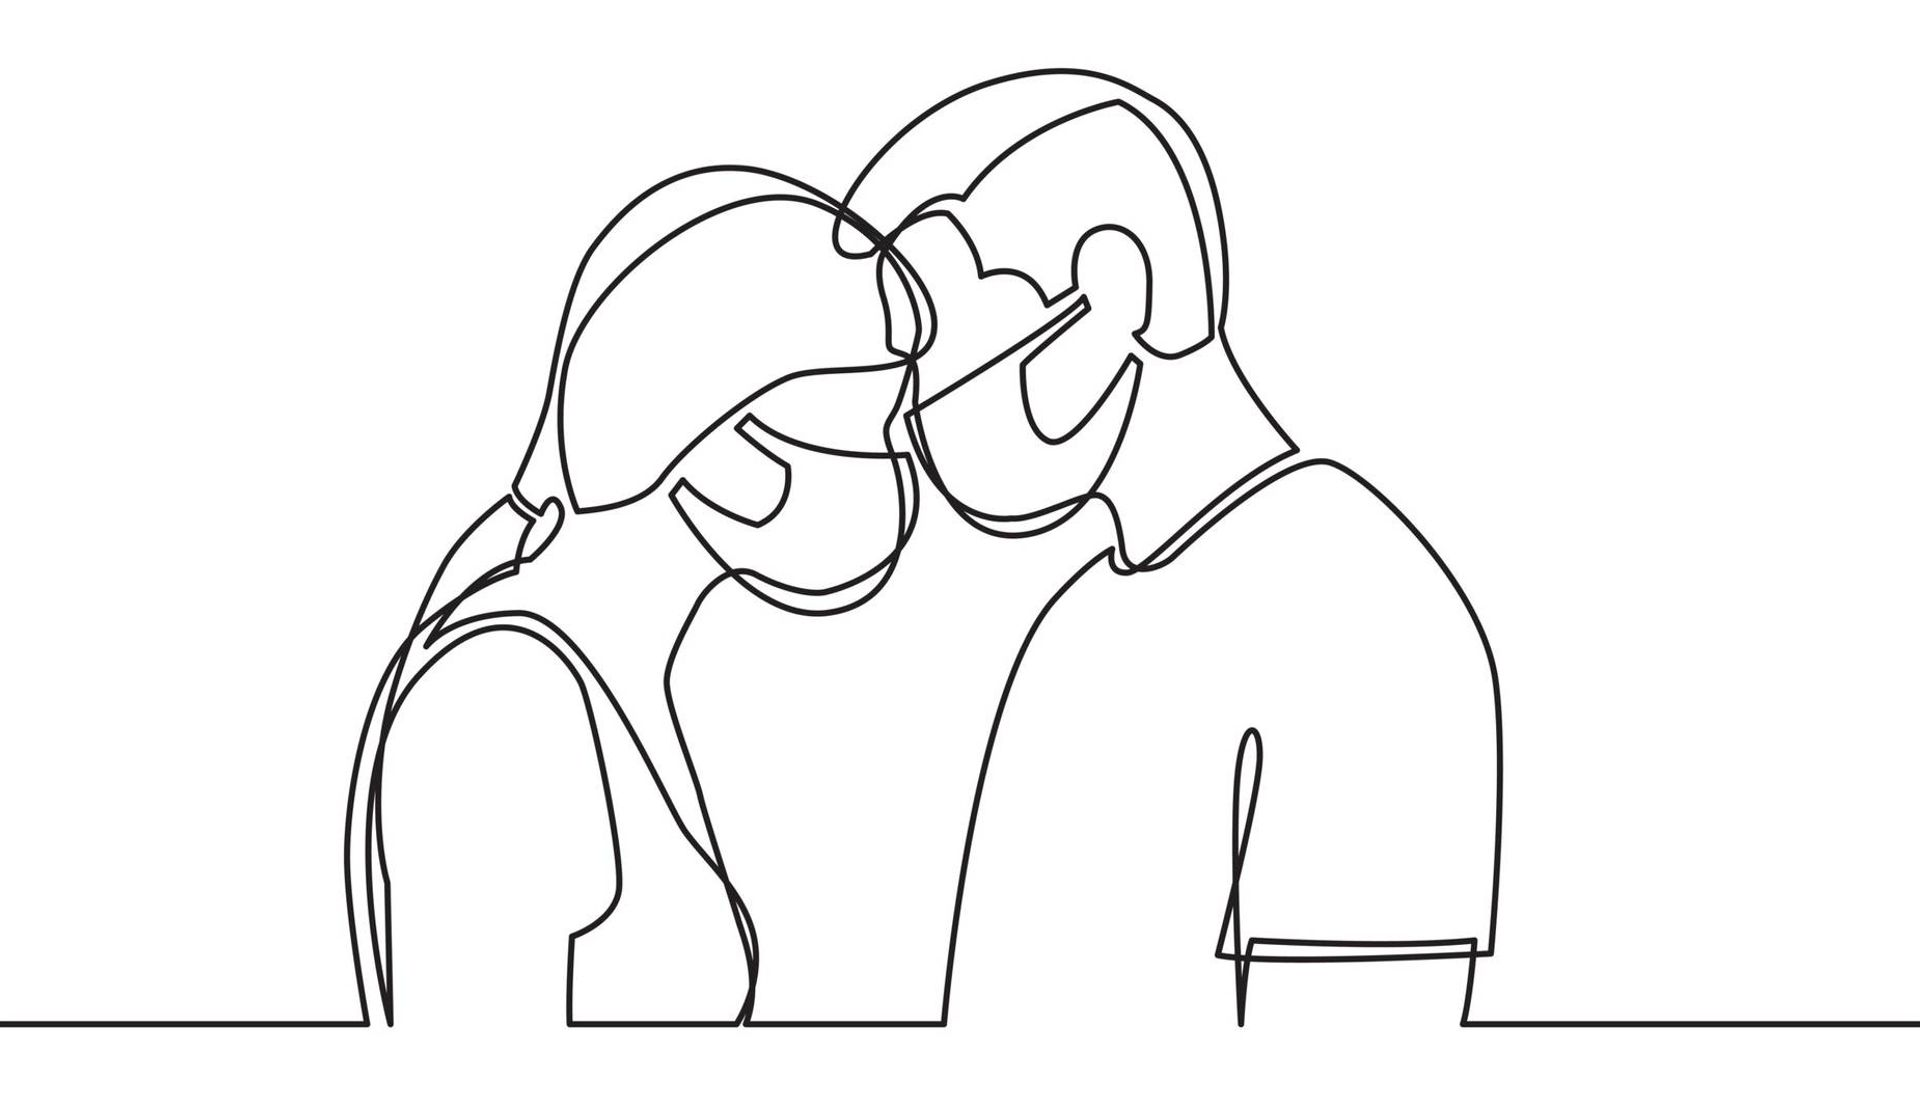 Line drawing illustration of a couple wearing masks and touching their foreheads together